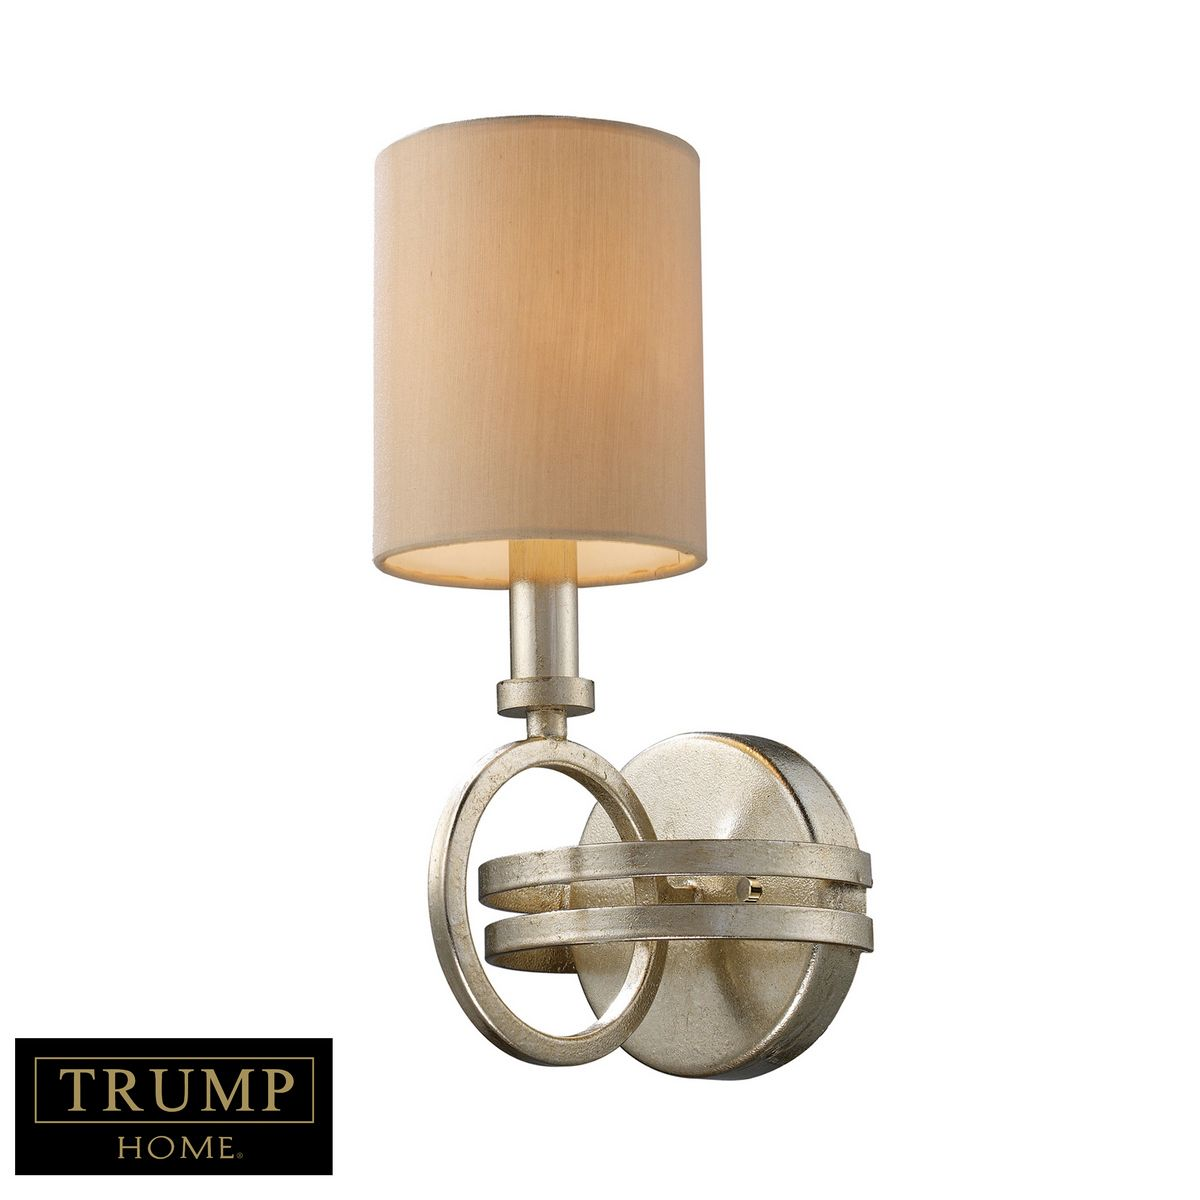 Wall Sconces Nyc: Elk New York Trump Home Sconce